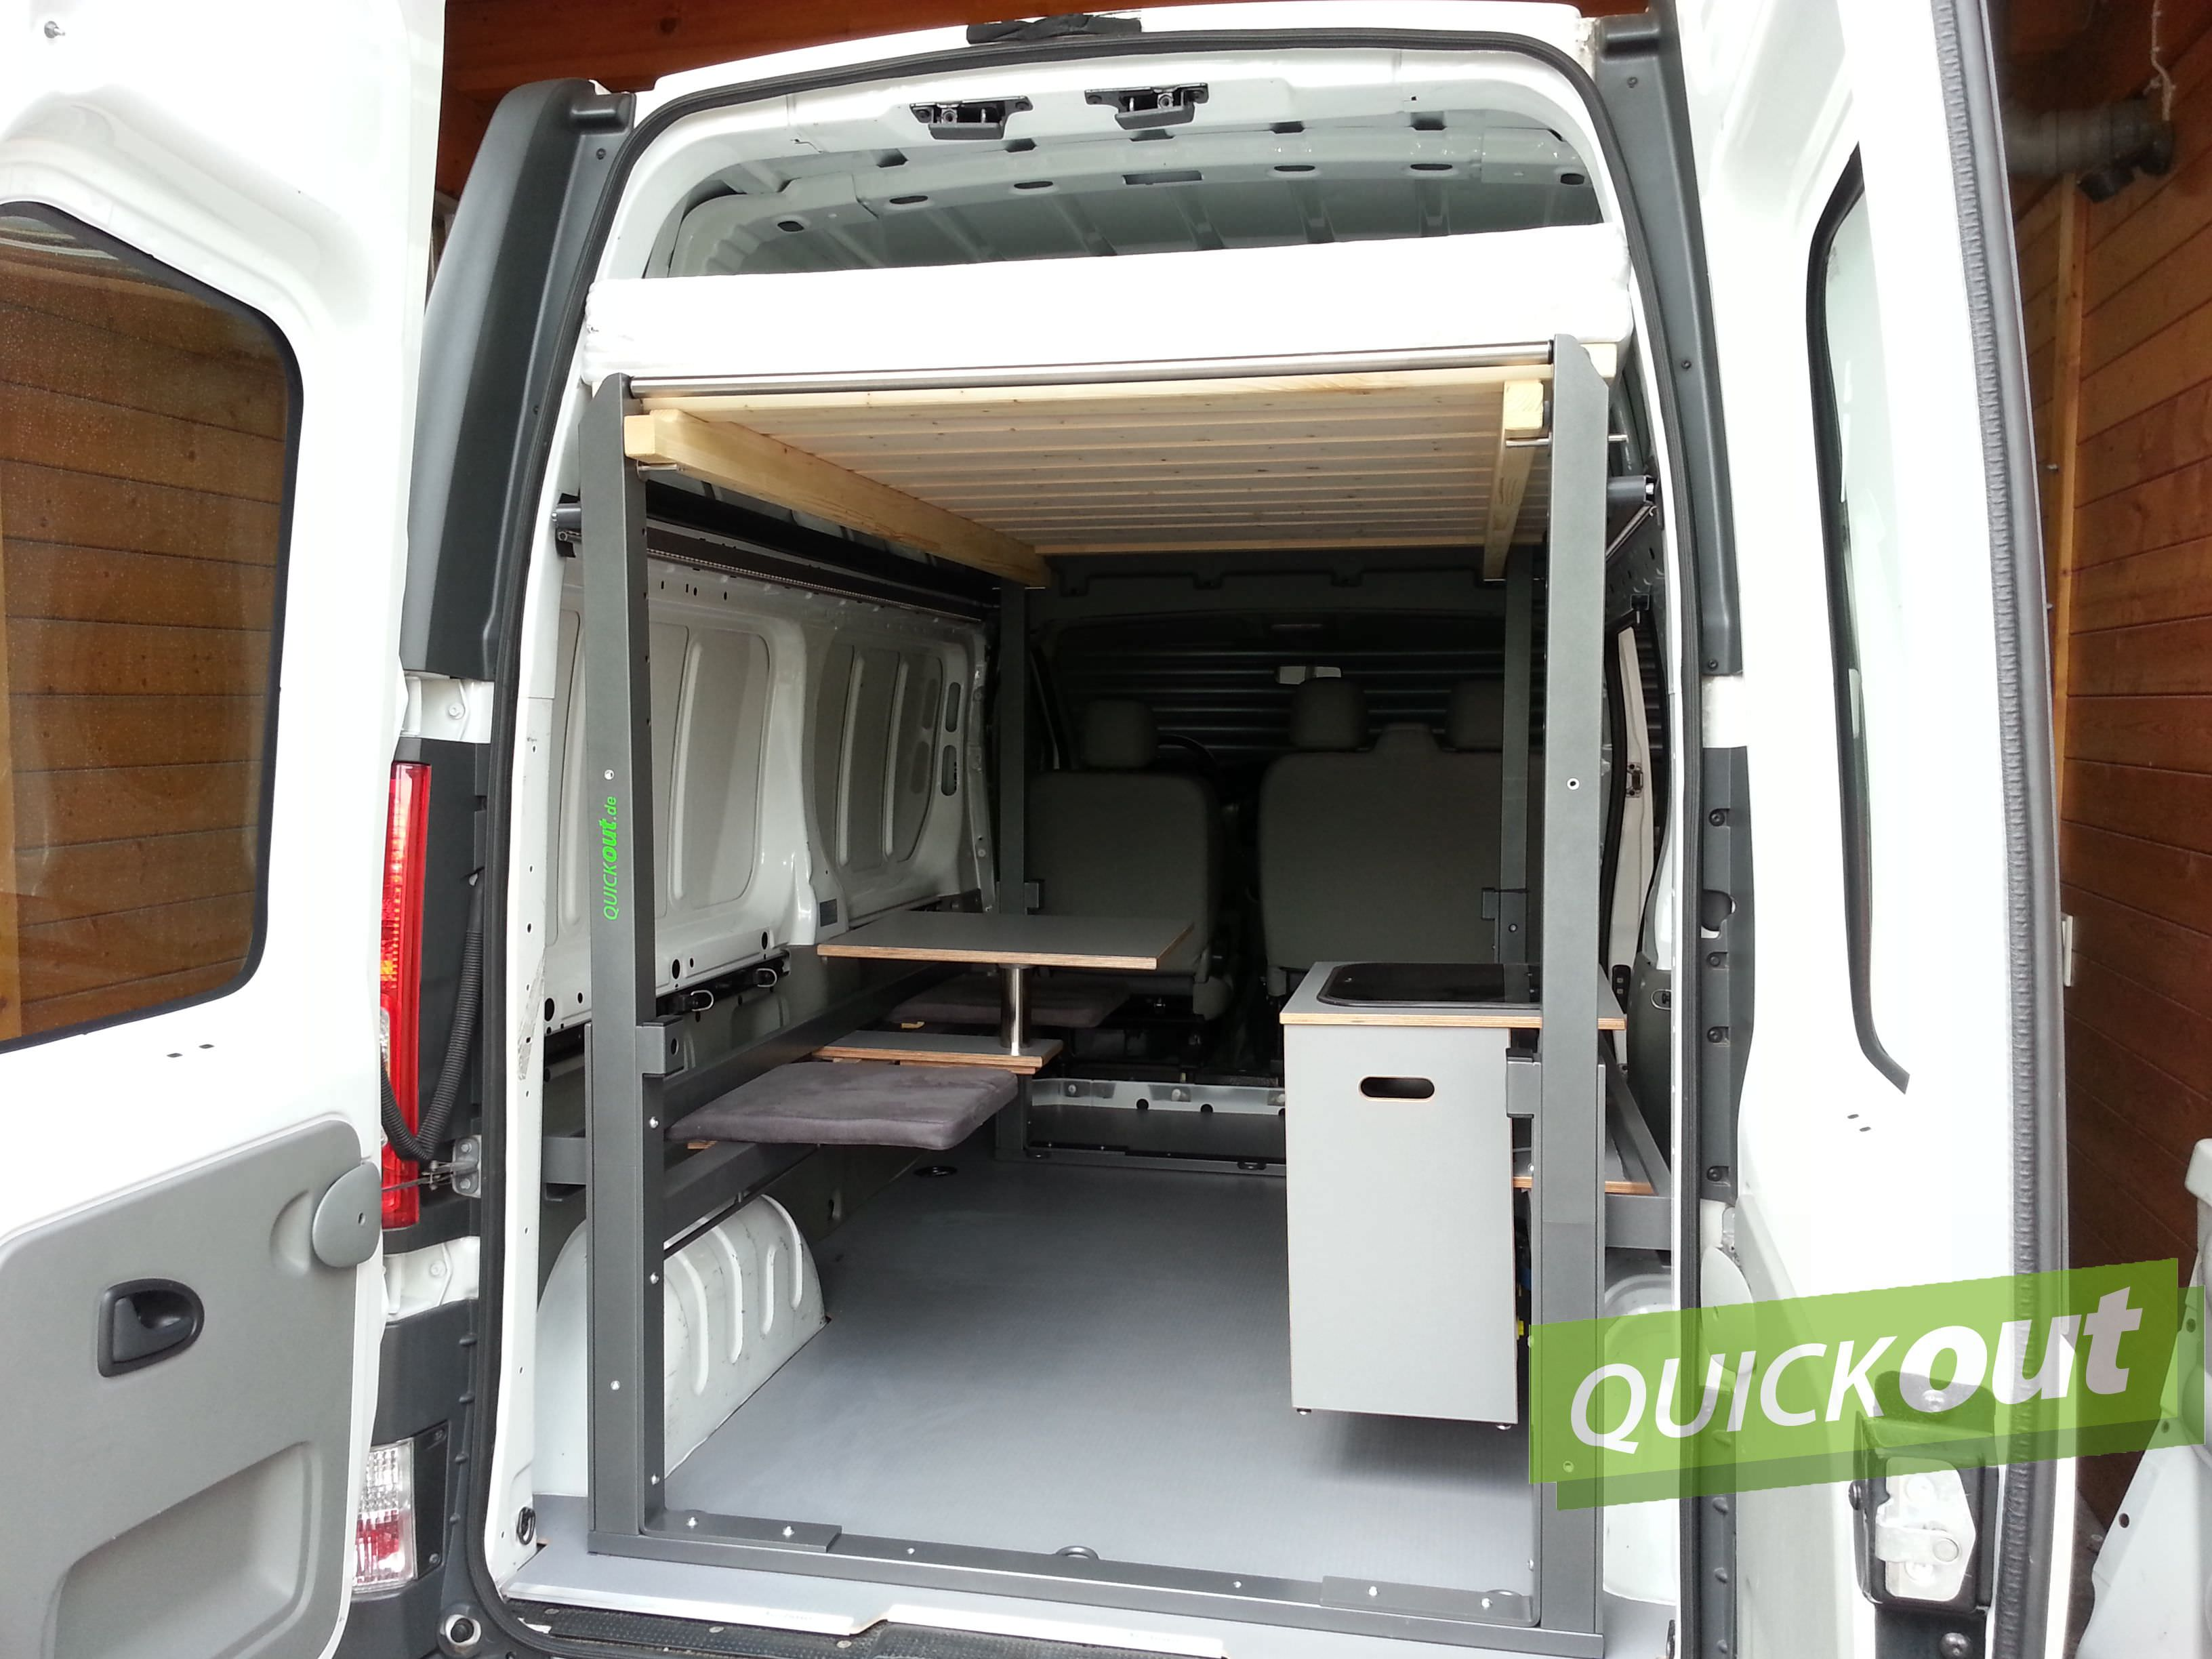 opel vivaro quickout wohnmobilausbau. Black Bedroom Furniture Sets. Home Design Ideas